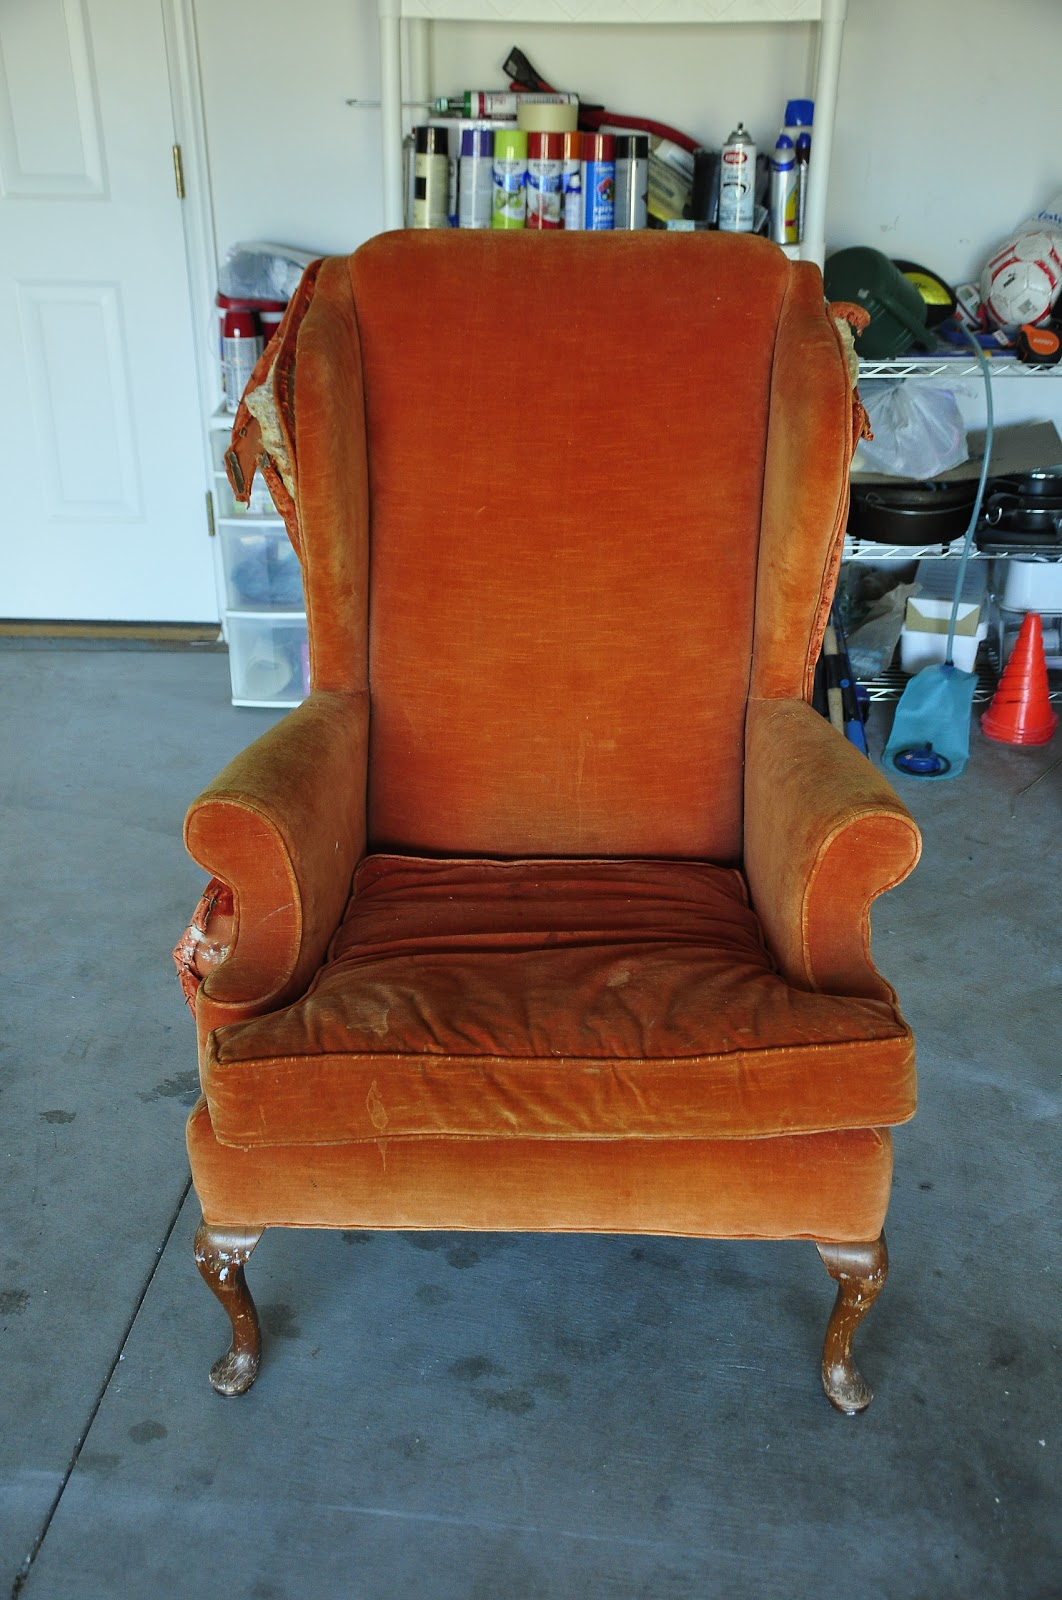 upholstering a chair cheap fold up camping chairs top 10 upholstery tips